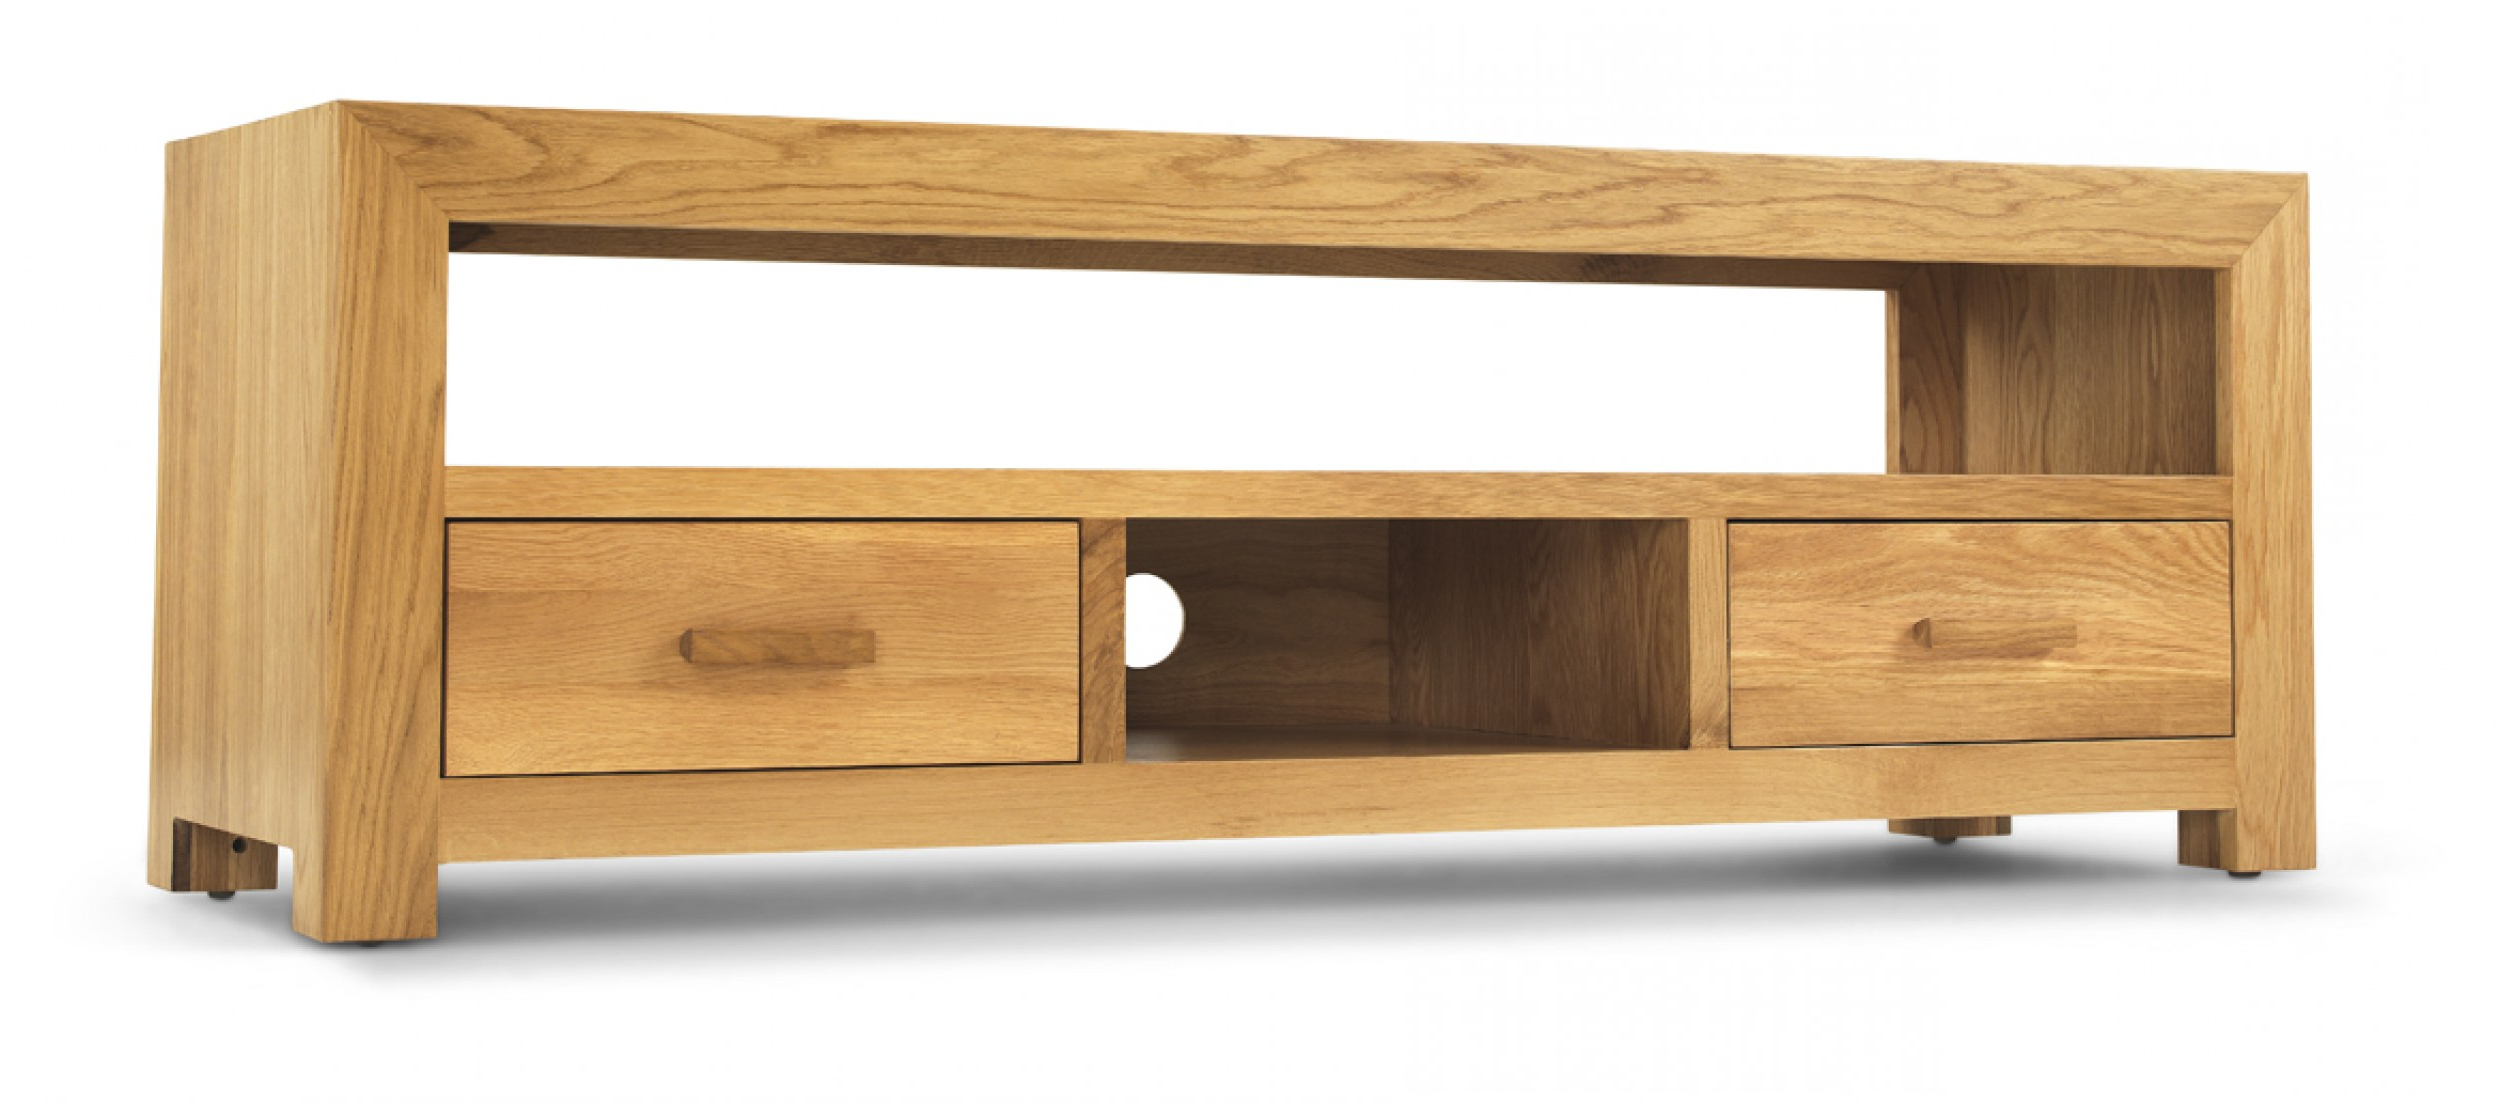 Popular Wide Oak Tv Units Throughout Cube Oak Plasma Tv Unit (View 13 of 20)